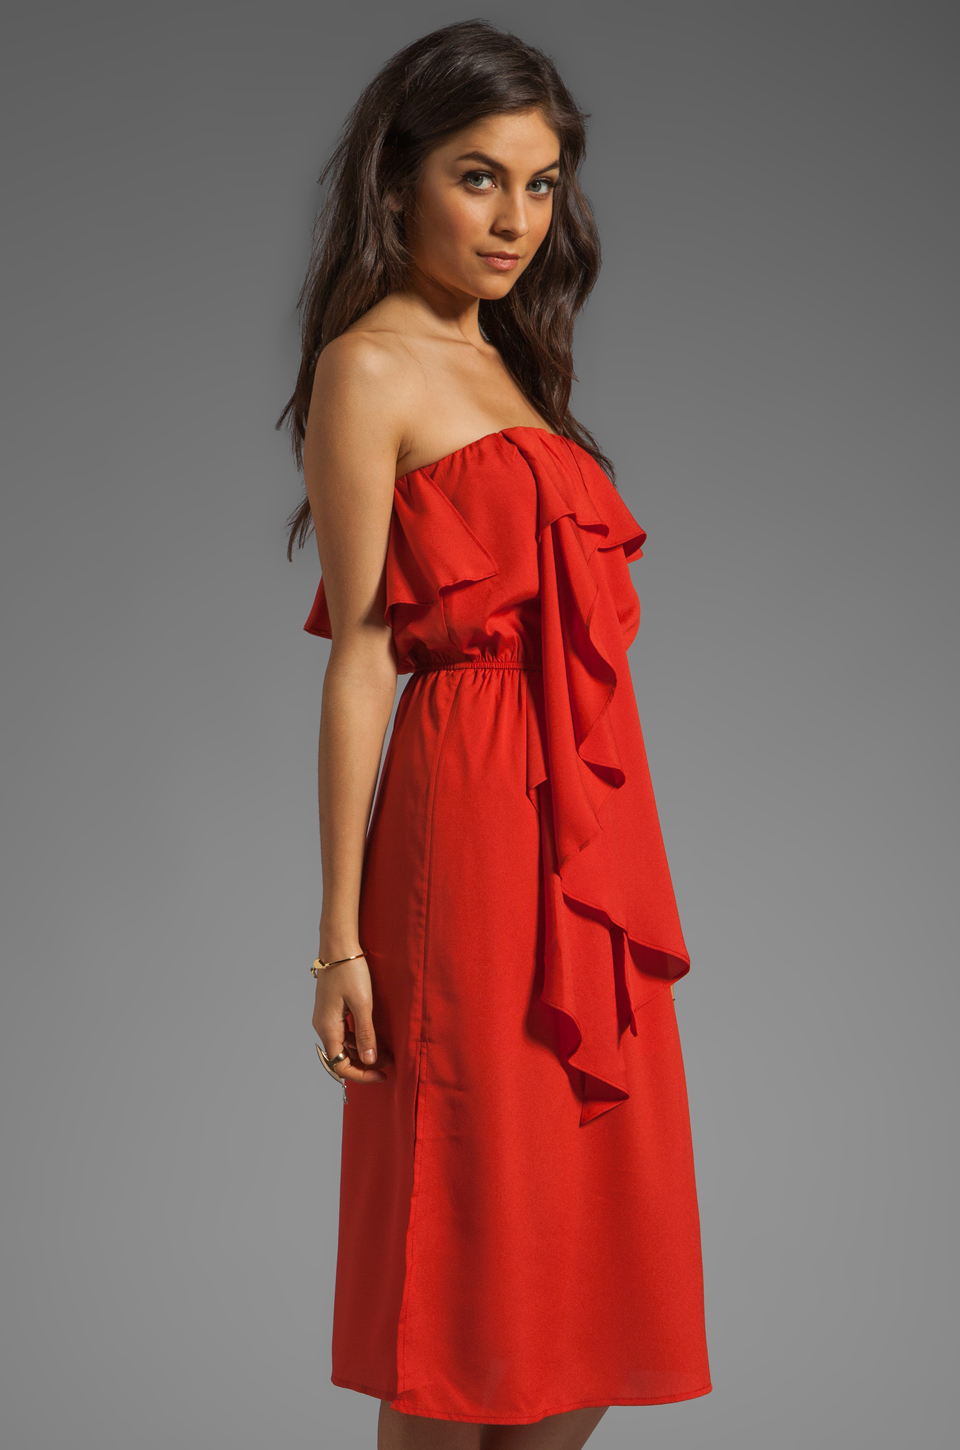 MM Couture by Miss Me Strapless Ruffle Dress in Red